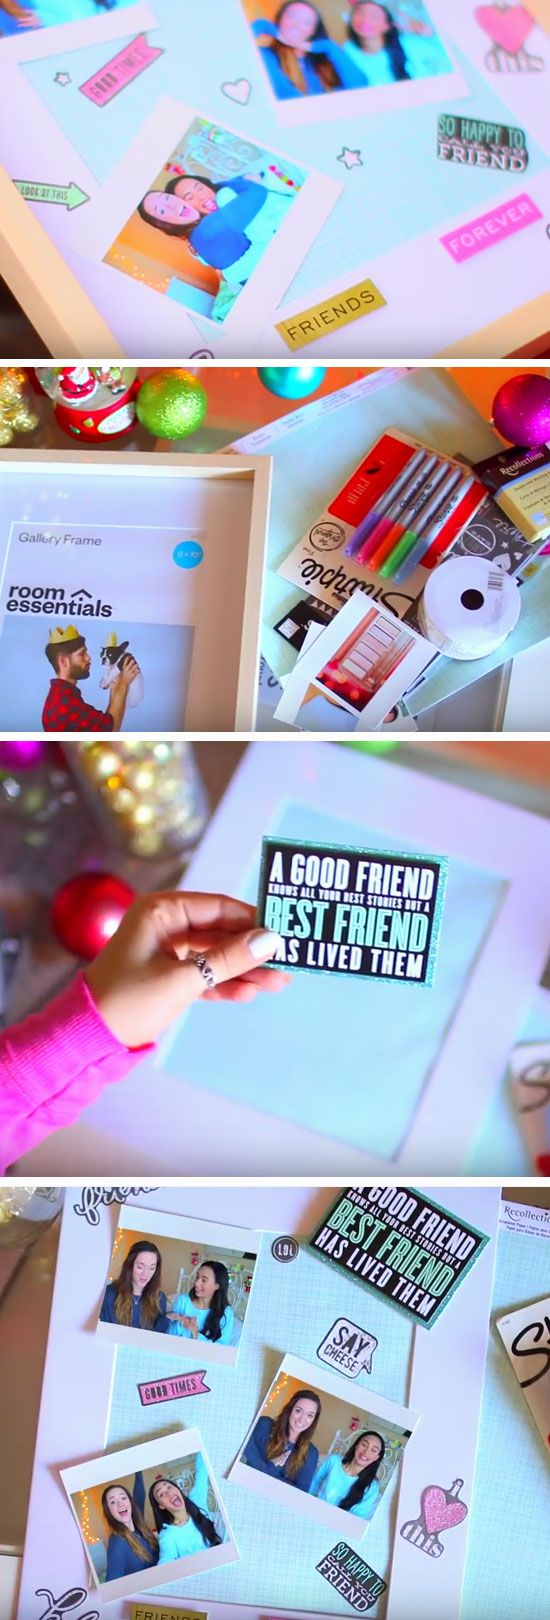 Scrapbook notebook ideas - 35 Diy Christmas Gifts Every Teen Girl Wants For 2016